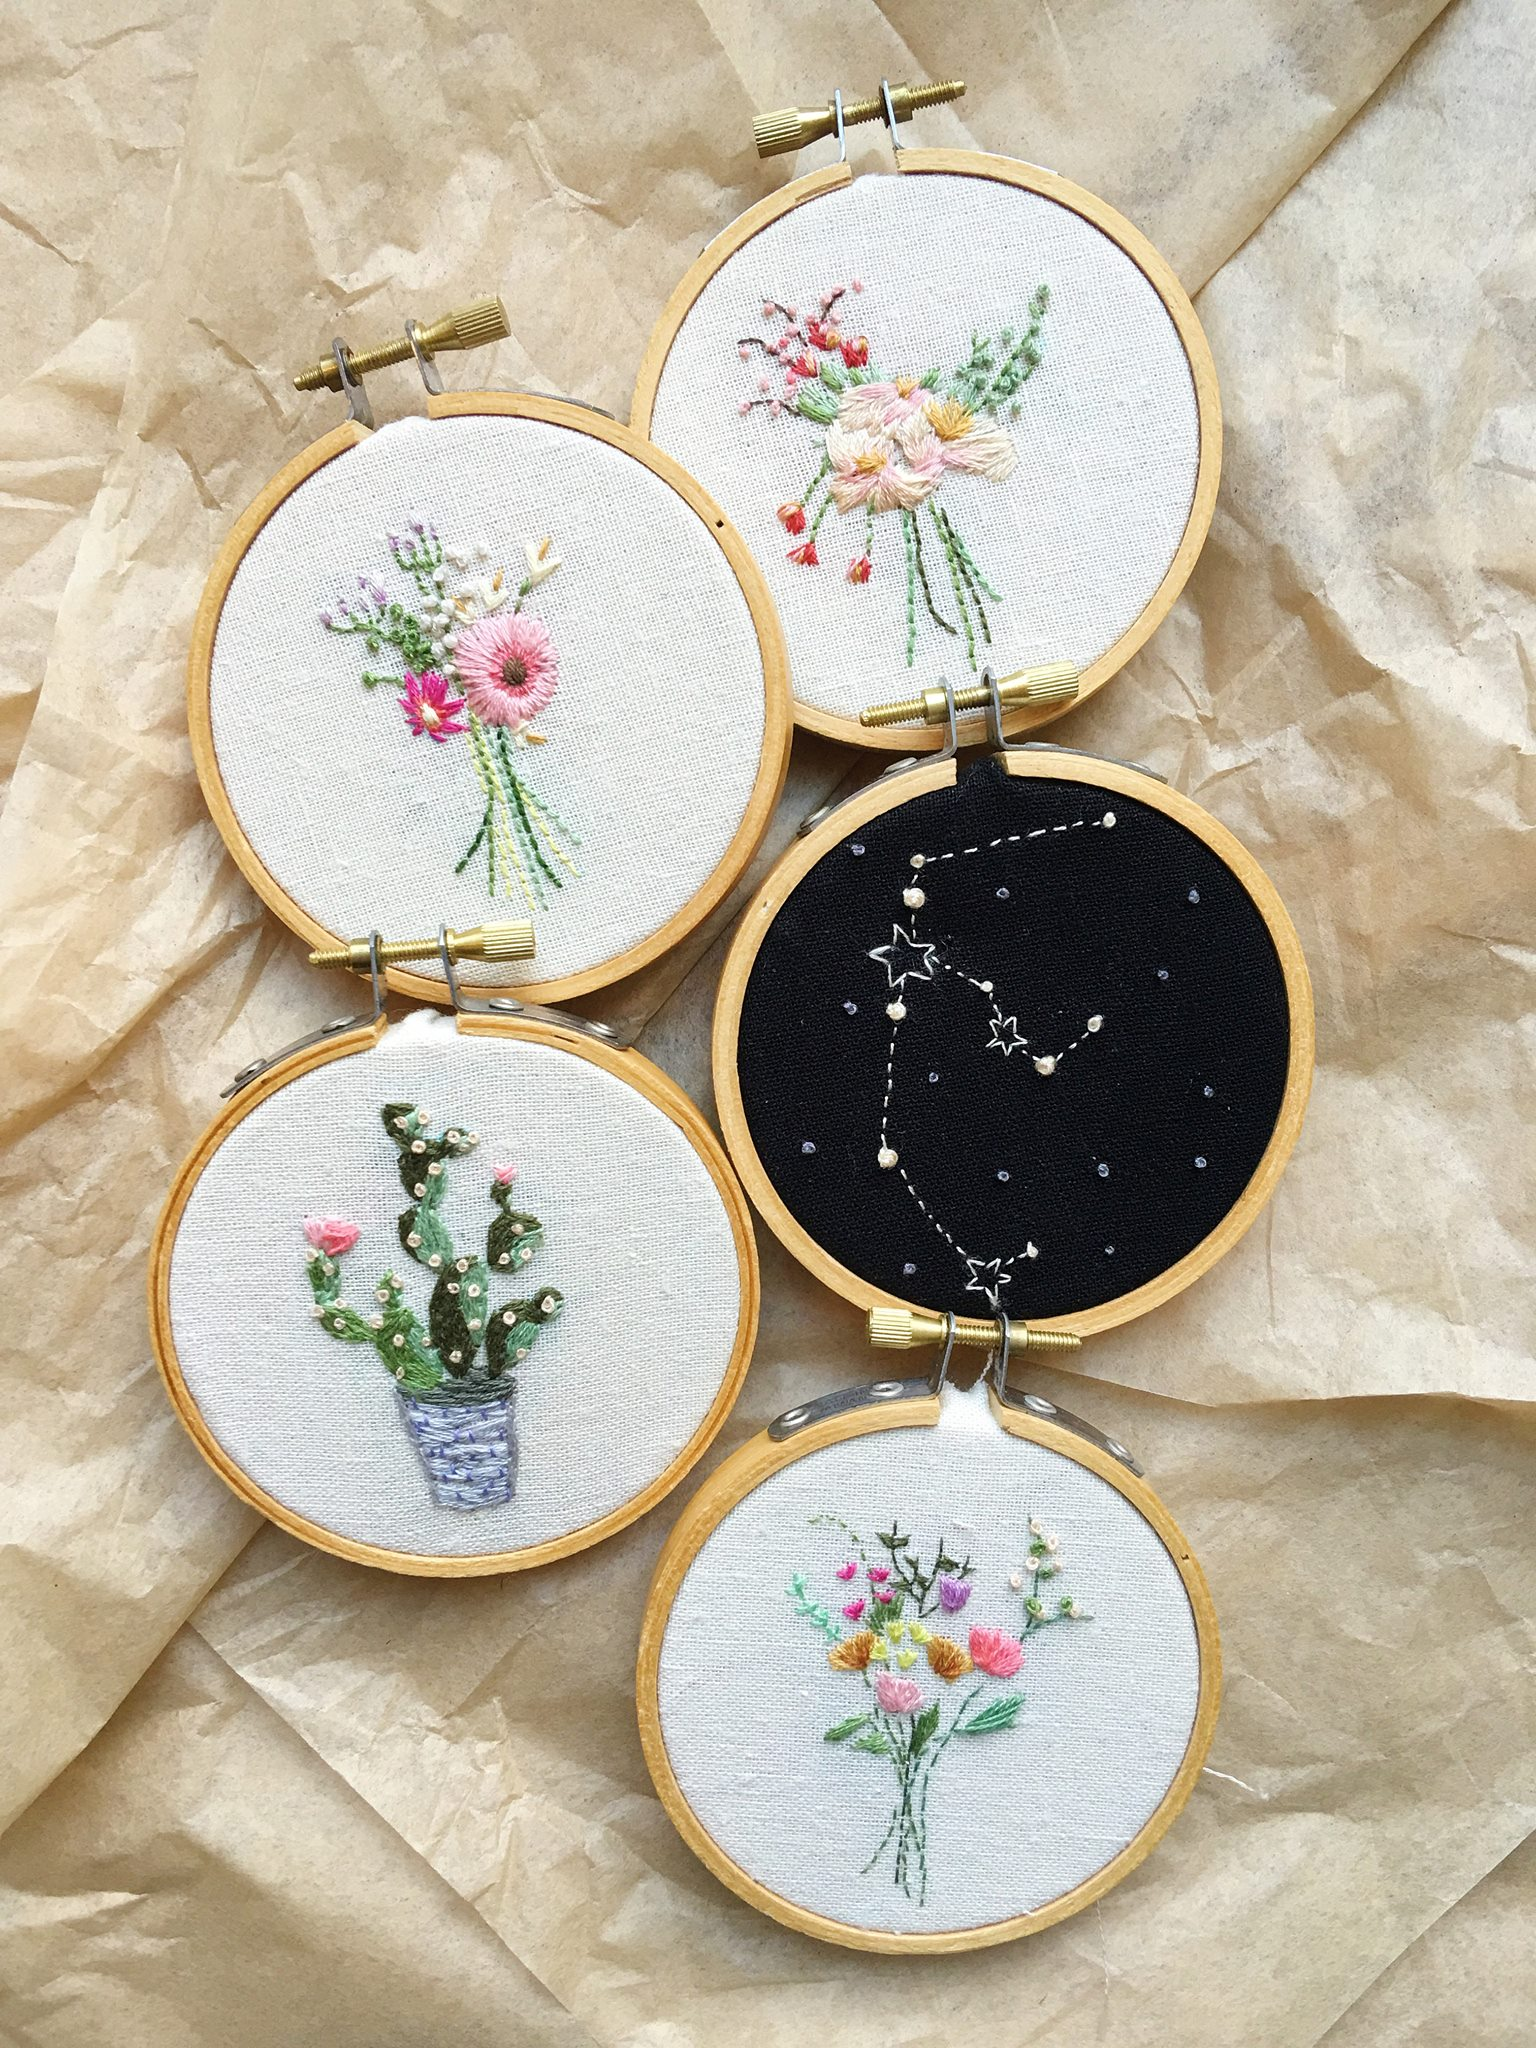 embroideries.jpg